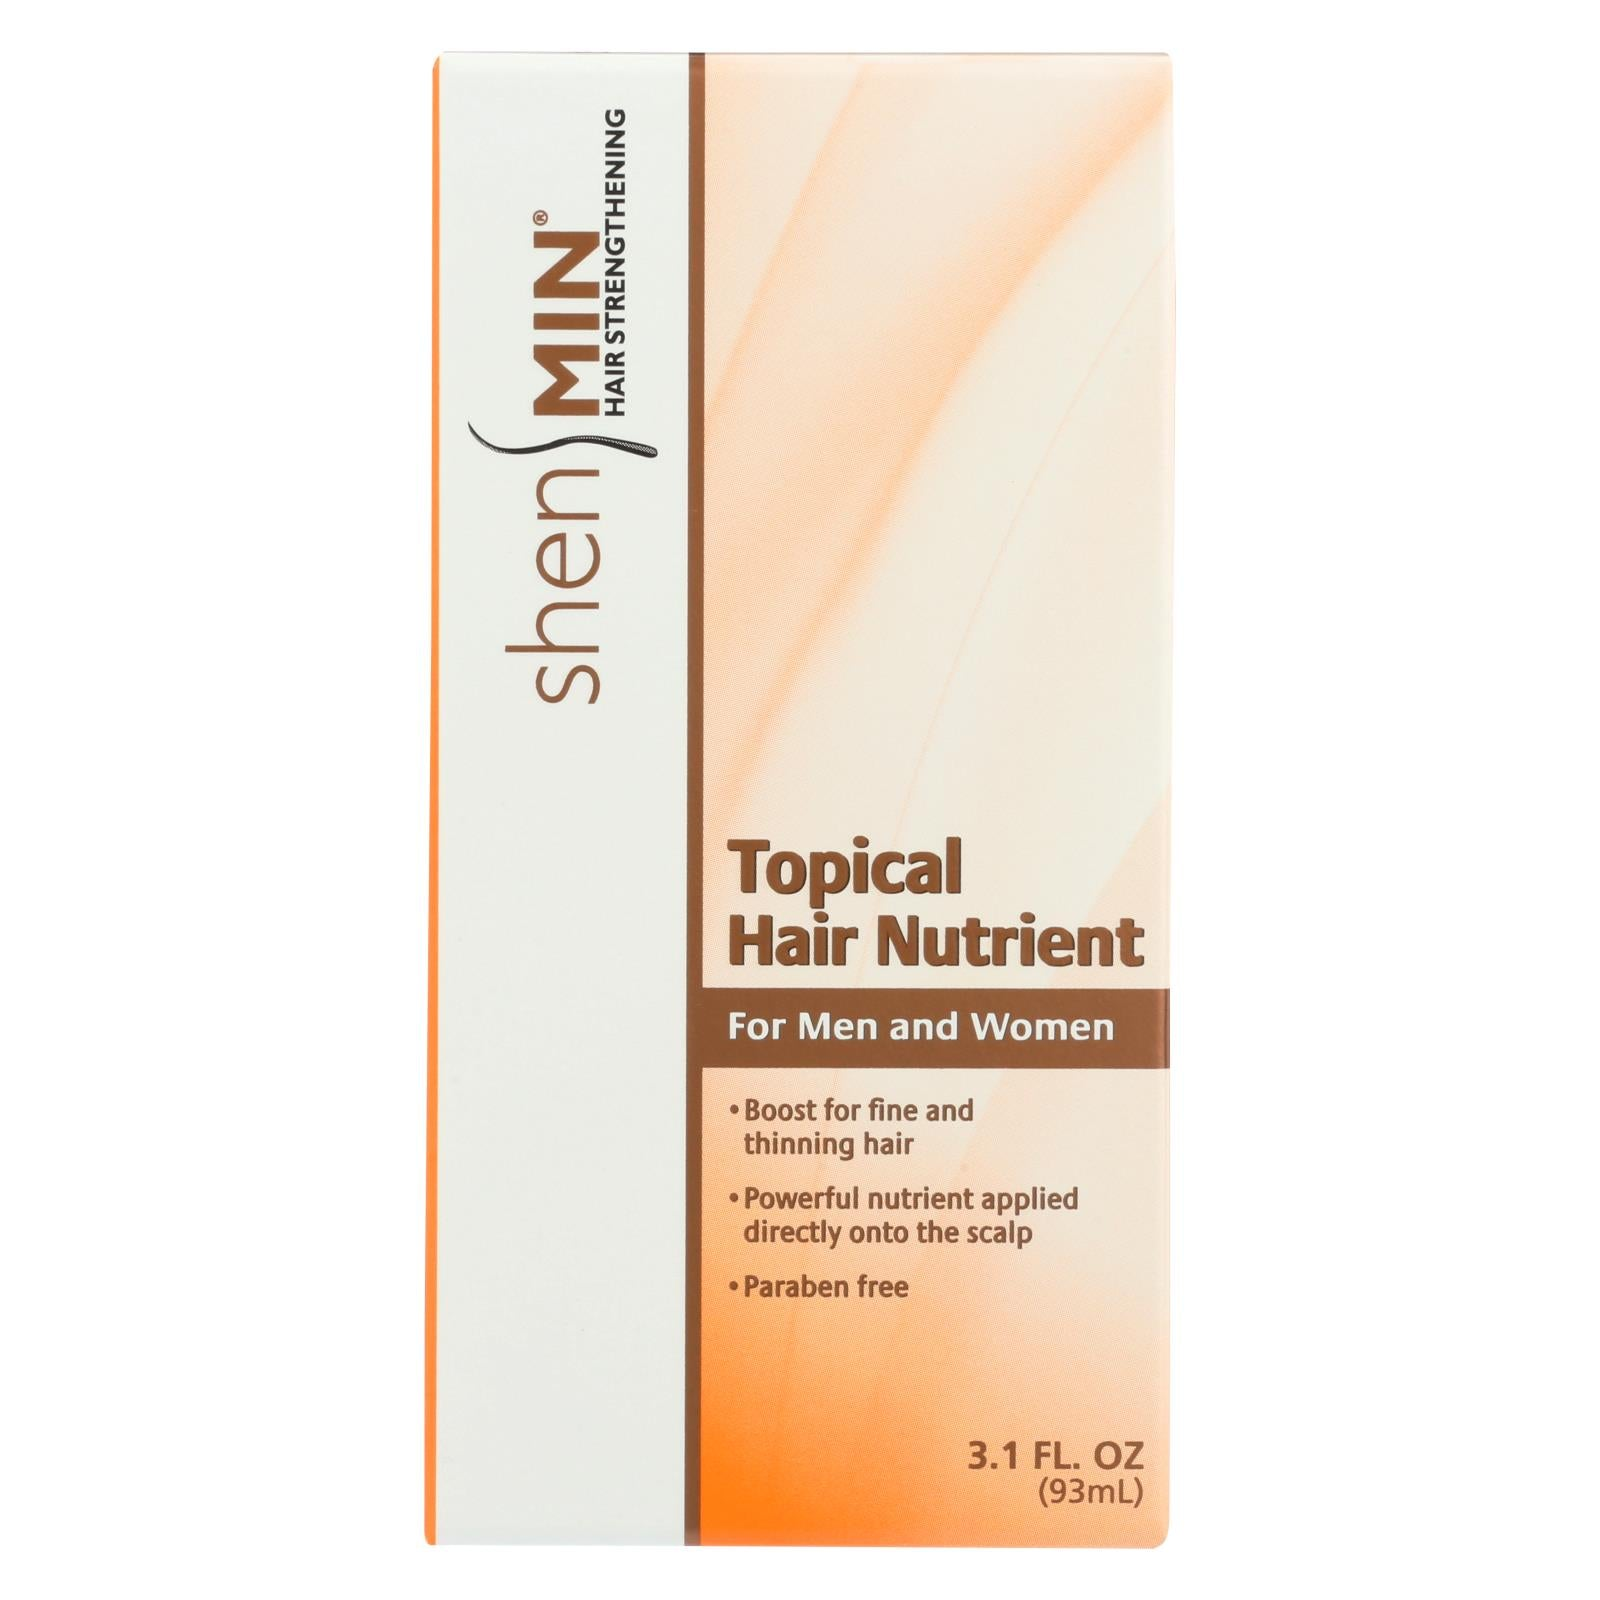 Shen Min Topical Hair Nutrient - 3 Fl Oz HG0642561